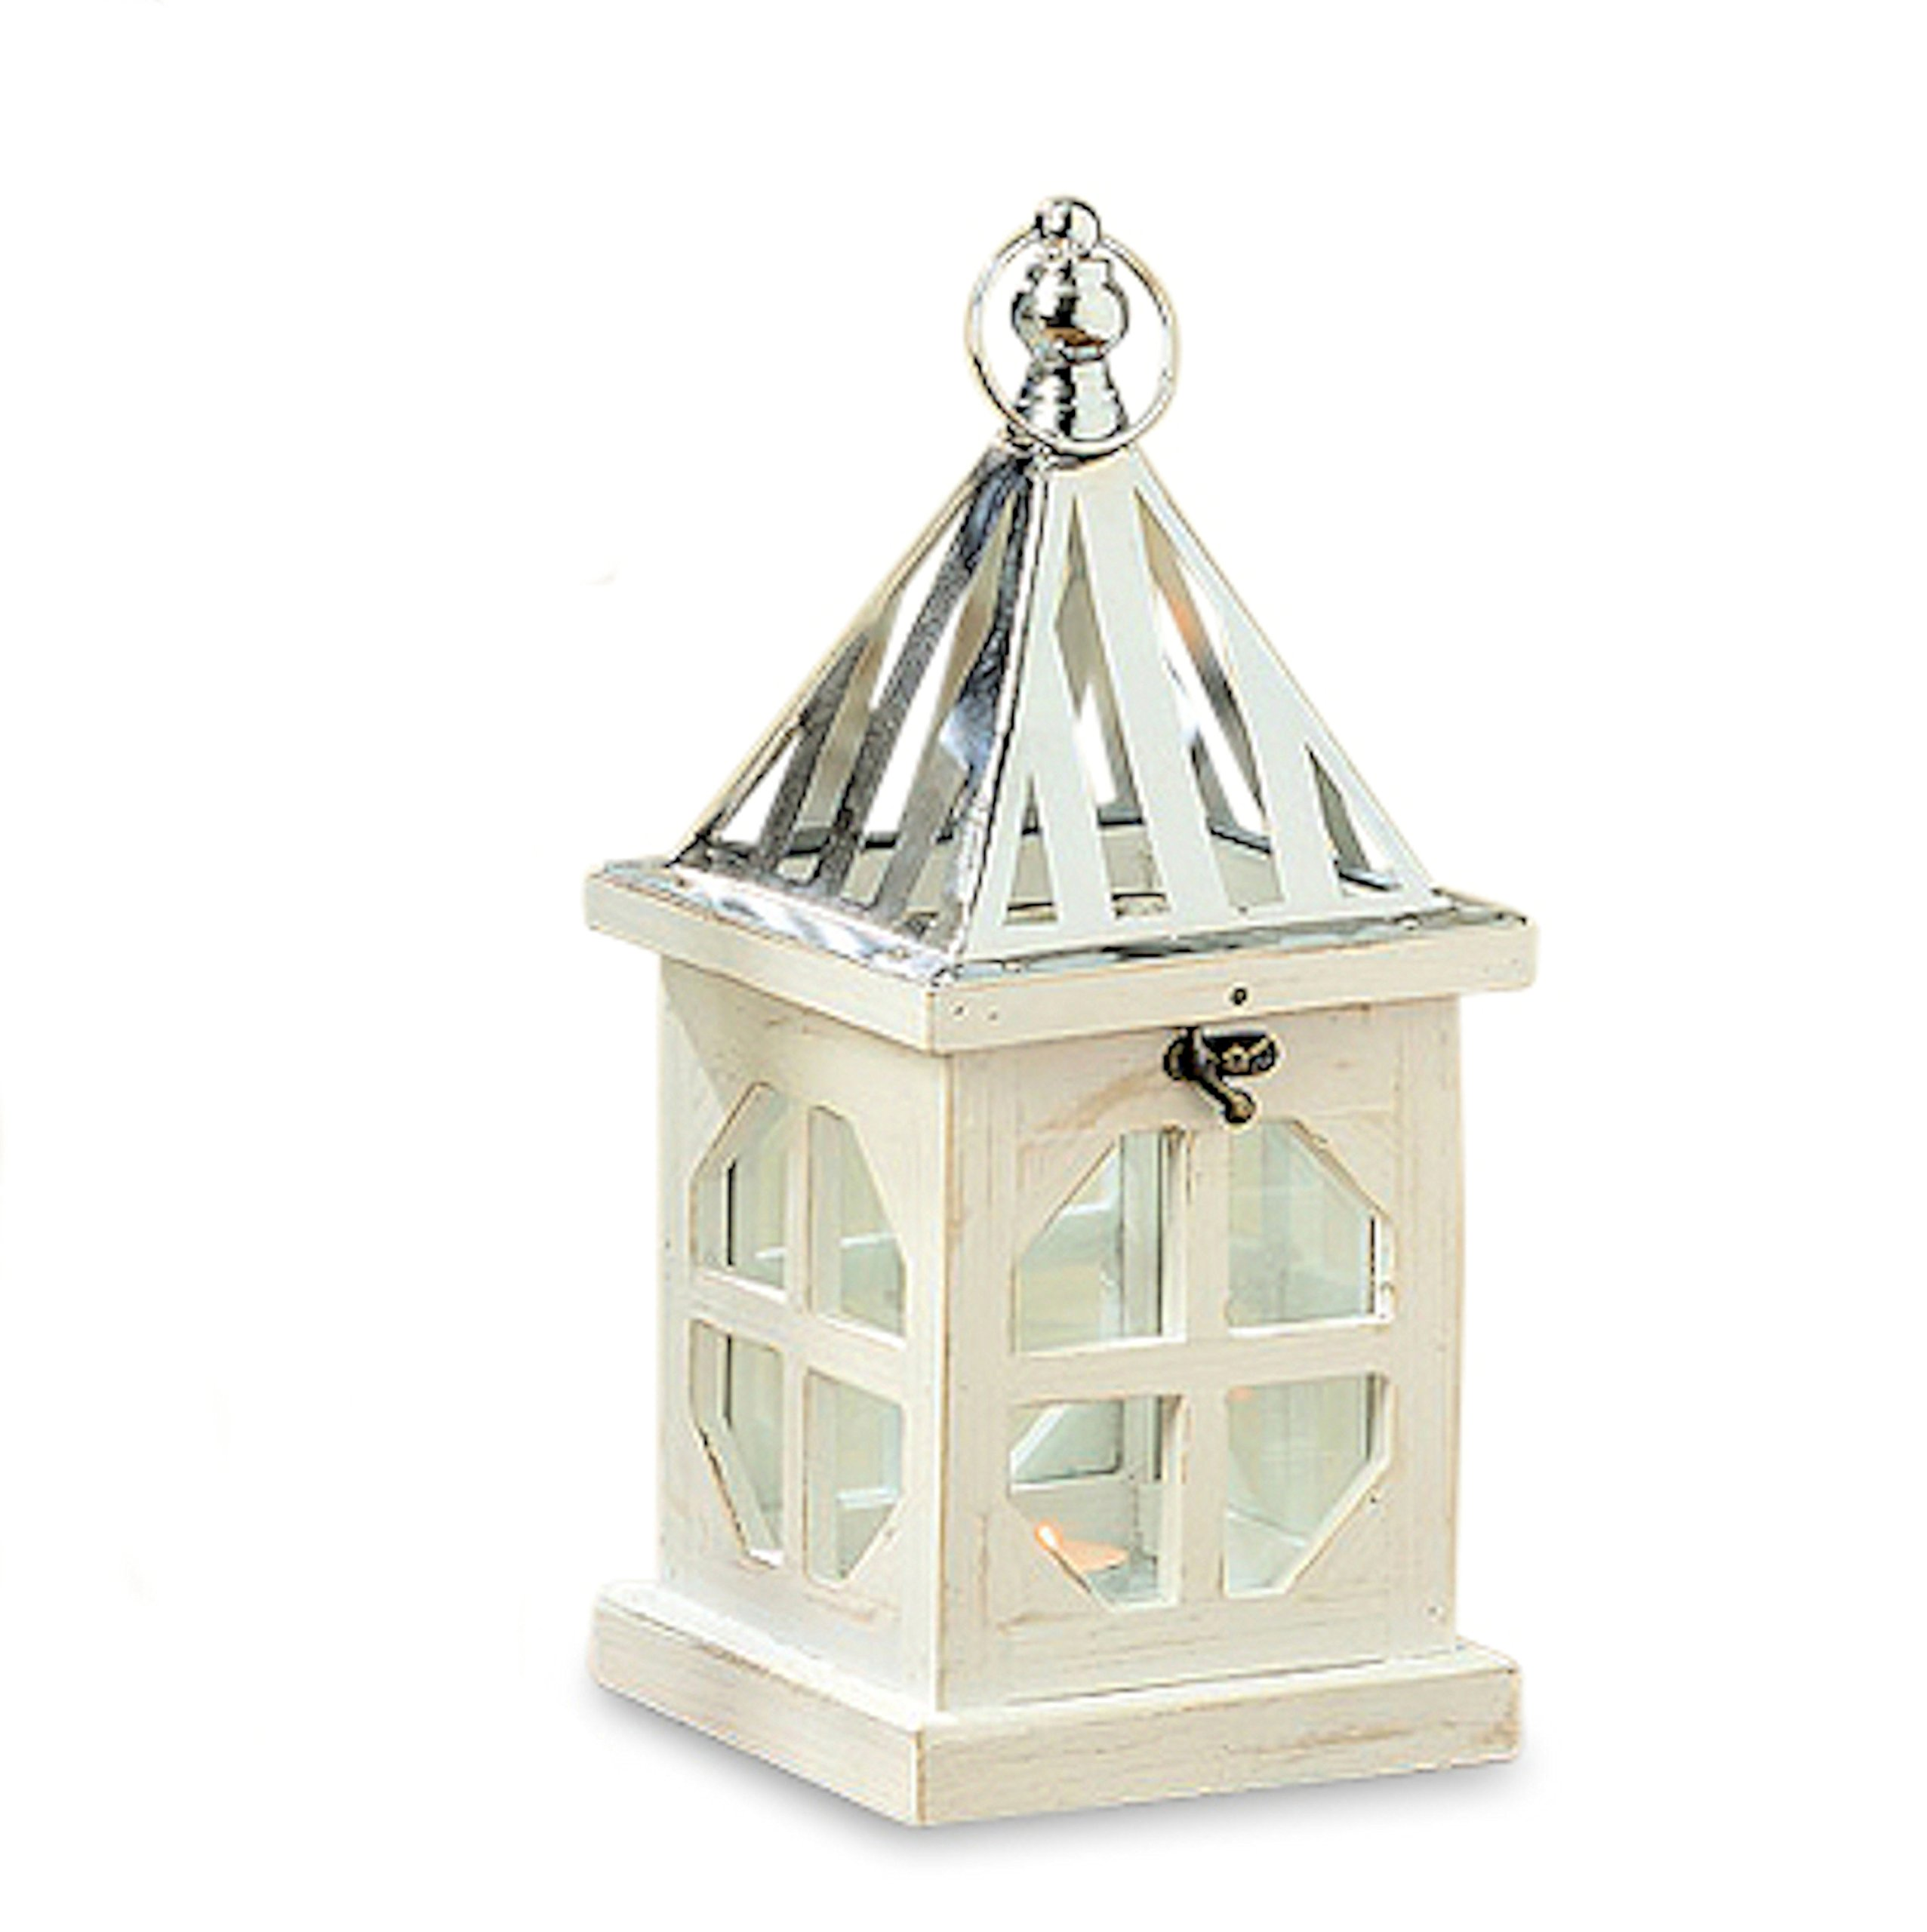 Whole House Worlds The Crosby Street Cross Post Candle Lantern, Silver Metal Slated Roof, Top Opening, Swing Latch, Hanging Loop, Solid Wood Construction, Glass, 13 Inches Tall, By by Whole House Worlds